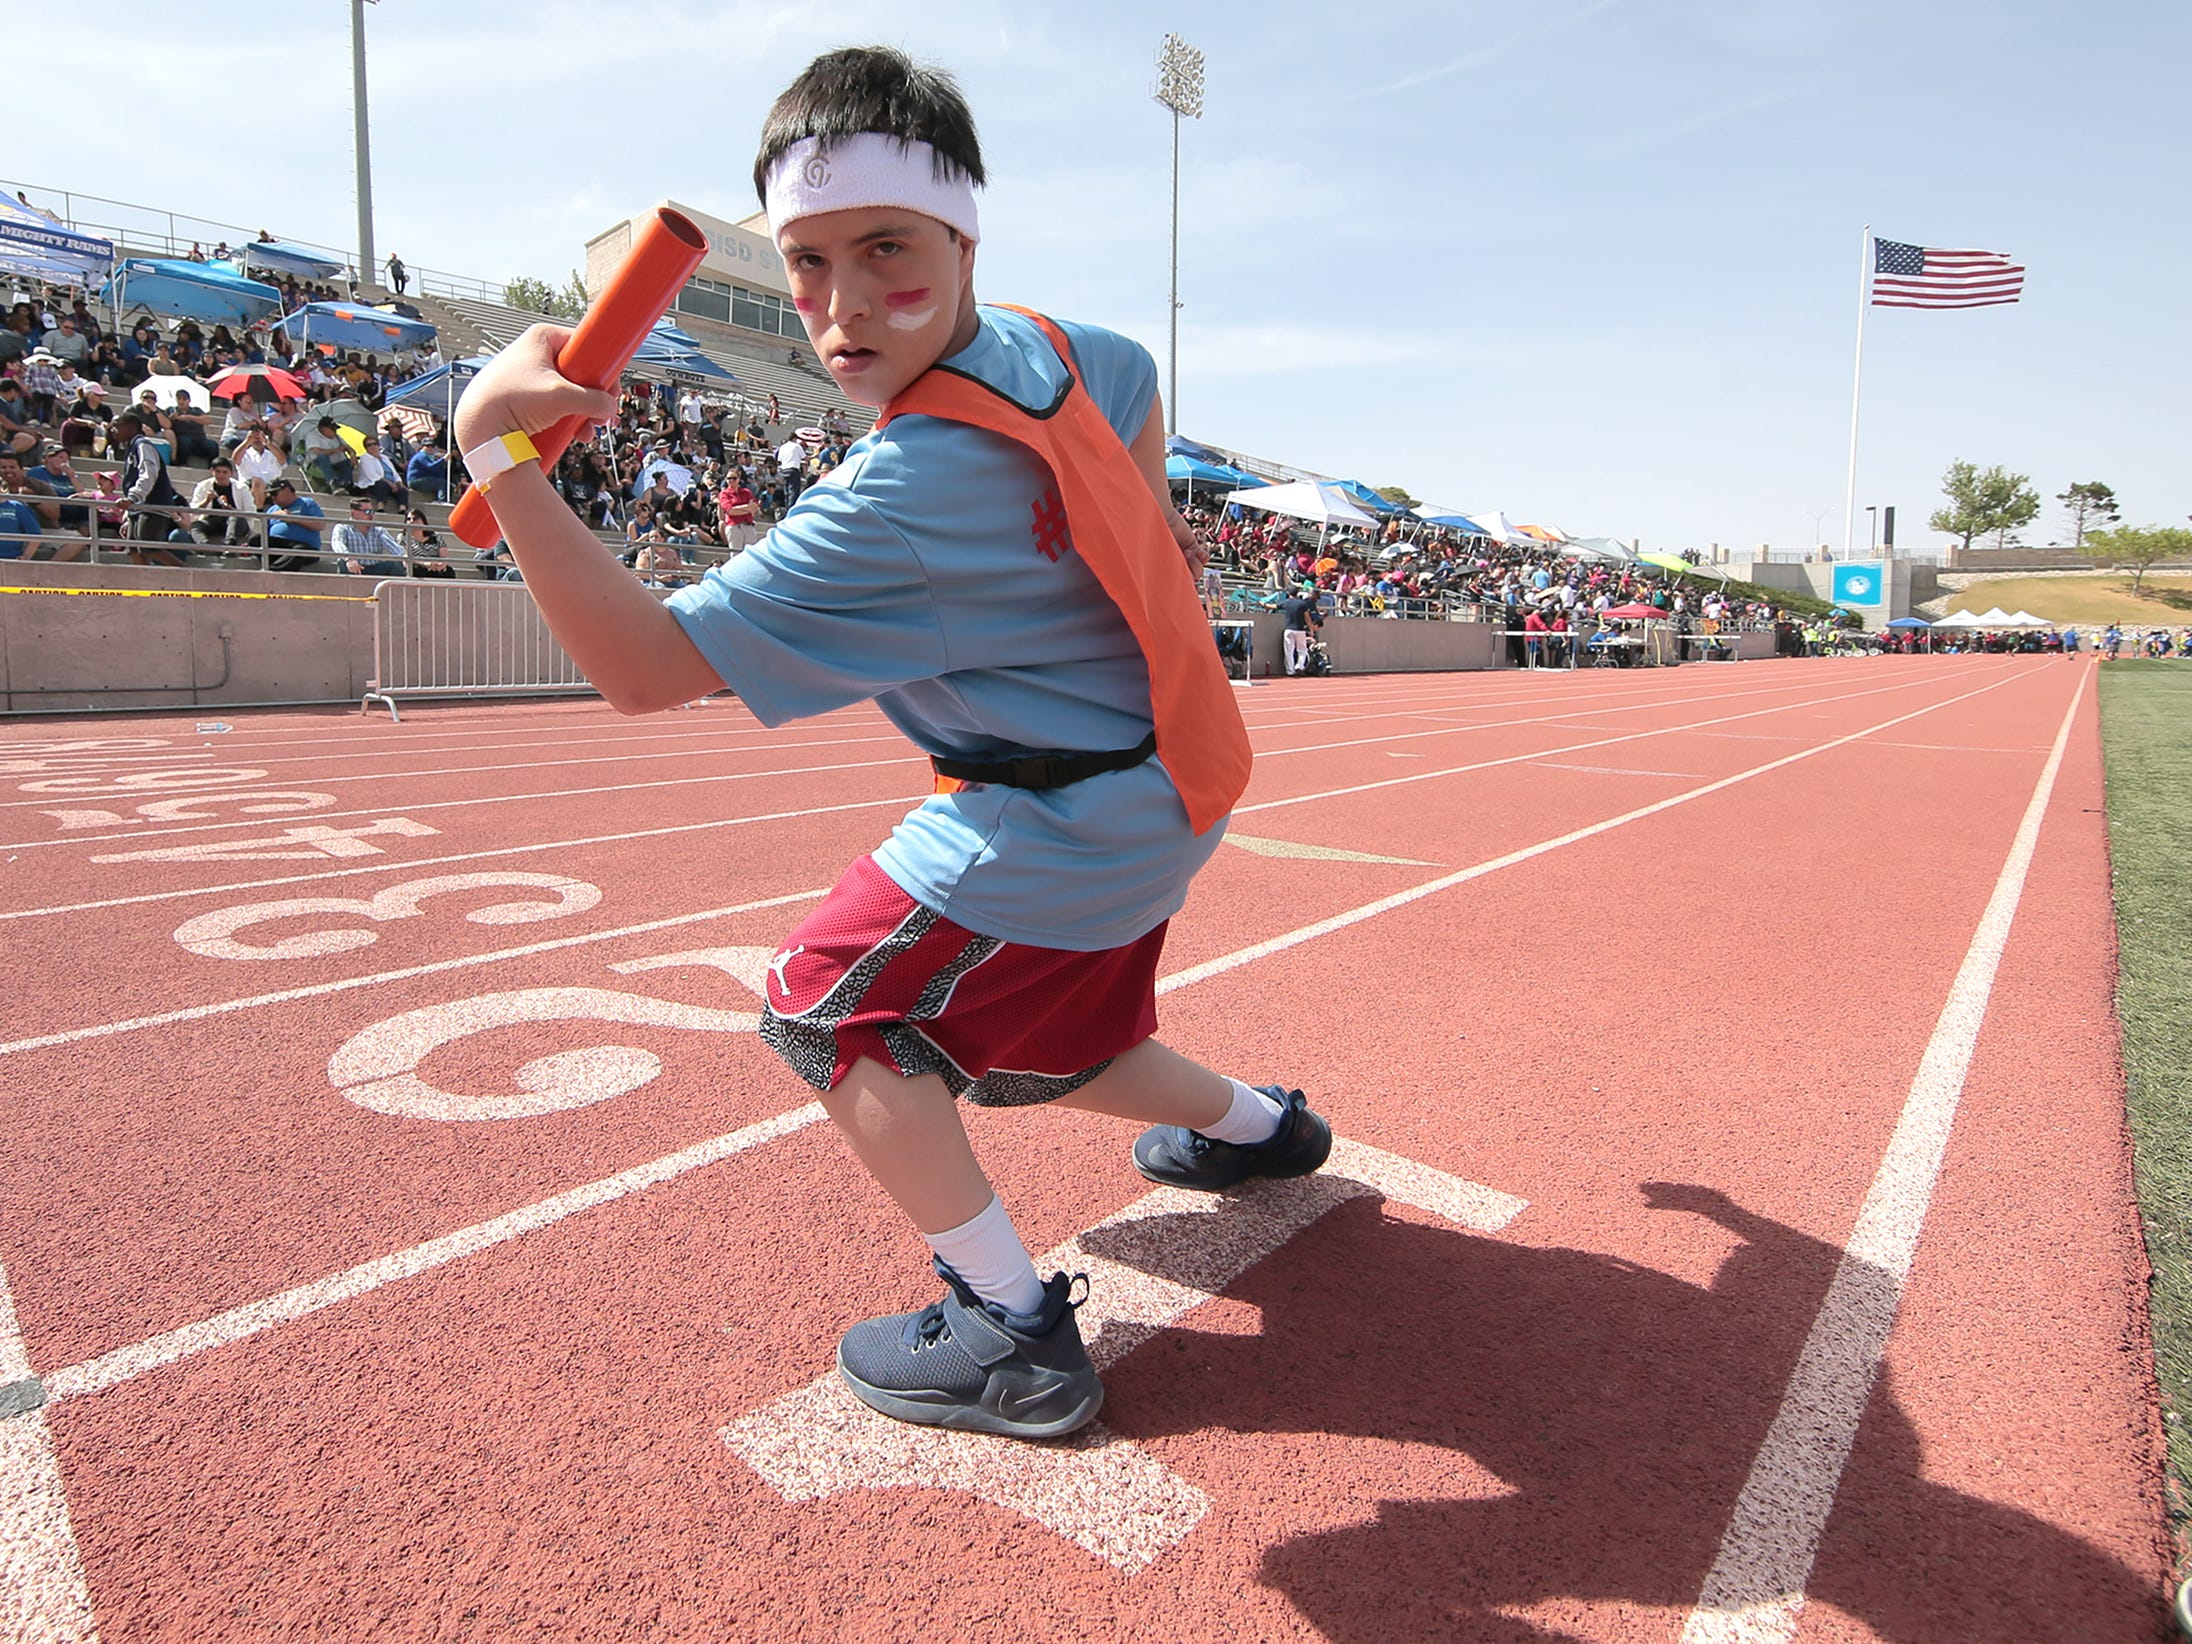 Oscar Rivera flexes before starting the 4x100-meter relay at the Socorro Independent School District Spring Games at the Student Activities Complex on Wednesday, April 3, 2019. High-fives and hugs awaited finishers as they dashed past cheerleaders and drum lines that lined the entire 100-meter homestretch. More than 1,000 students with special needs participated in the district's annual Spring Games. They competed in a variety of track events. Smiles filled their faces as they made their way to the finish line.